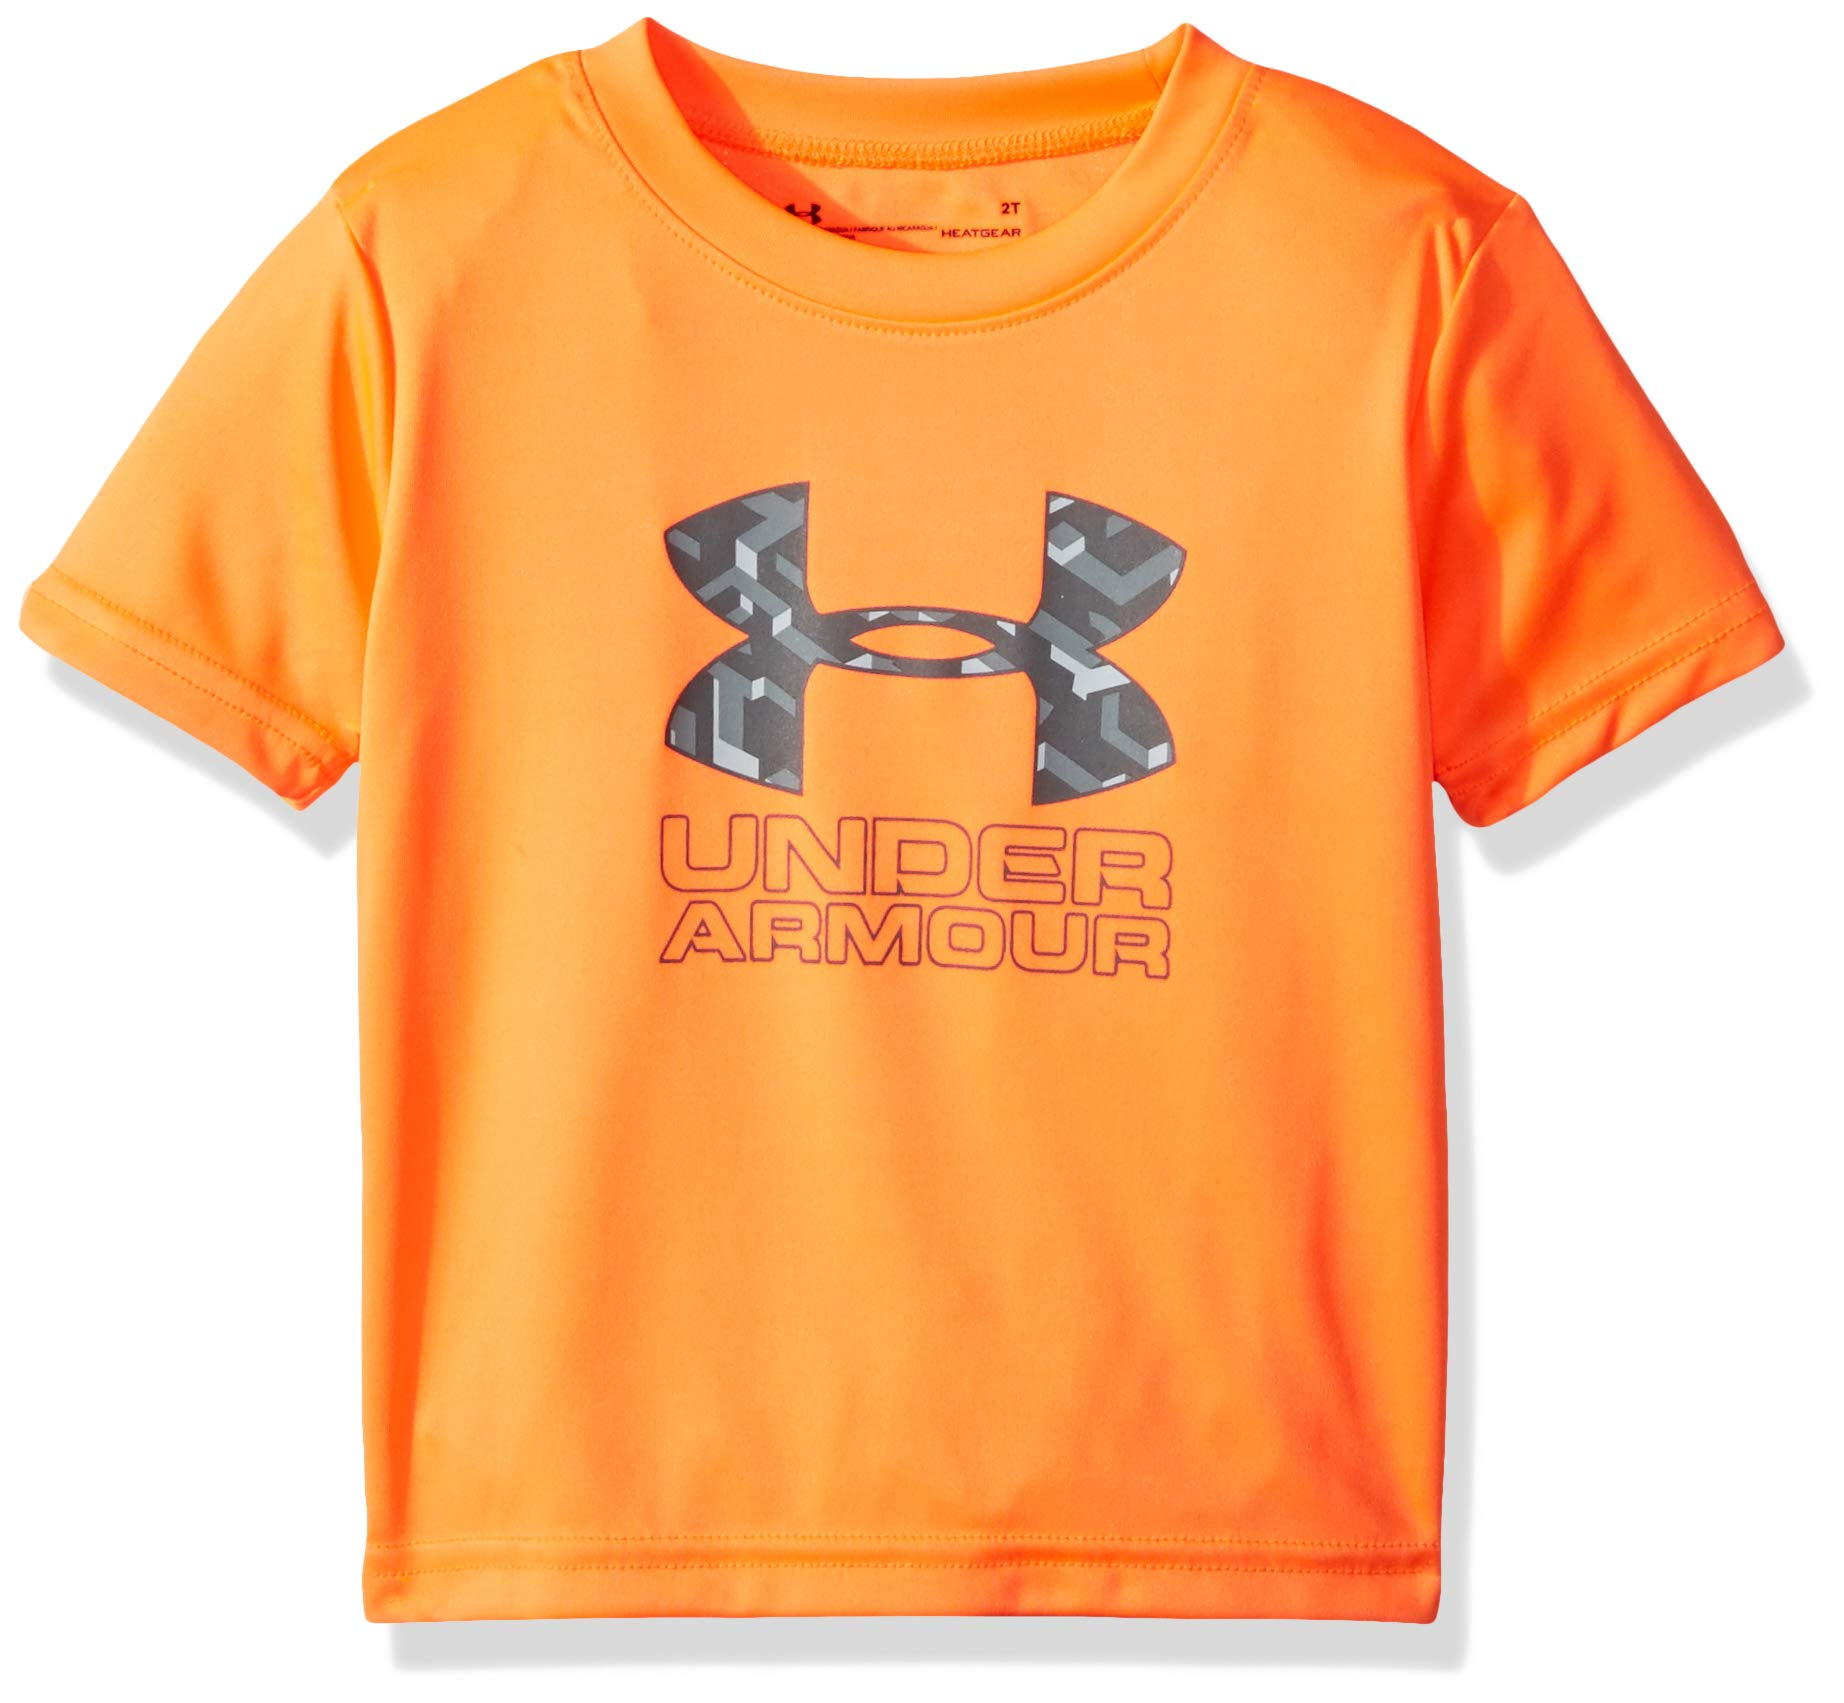 Under Armour Boys' Little Big Logo Short Sleeve Tee Shirt, Orange Glitch-S19, 6 by Under Armour